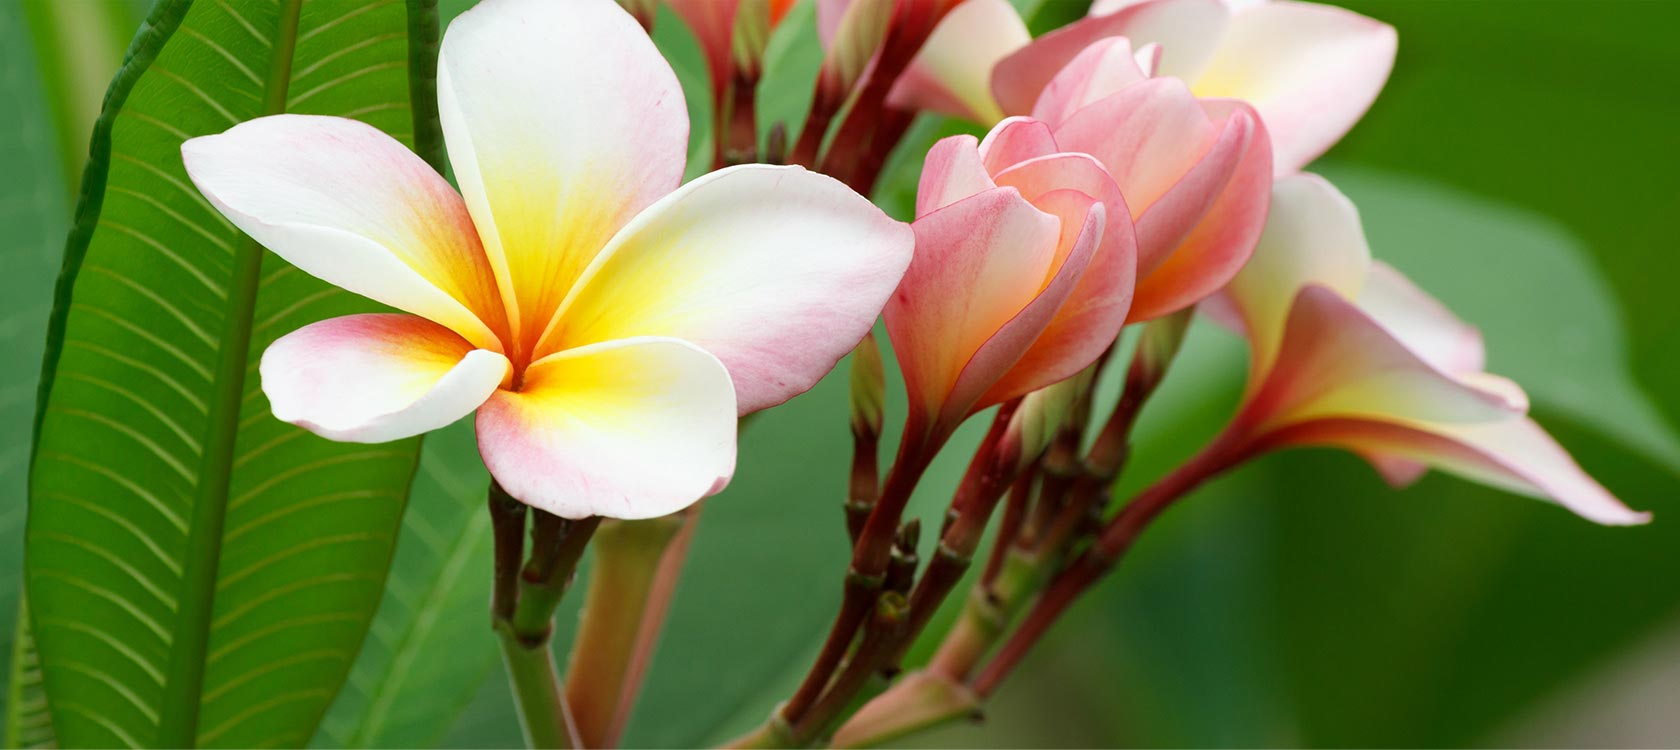 a close up of tropical flowers